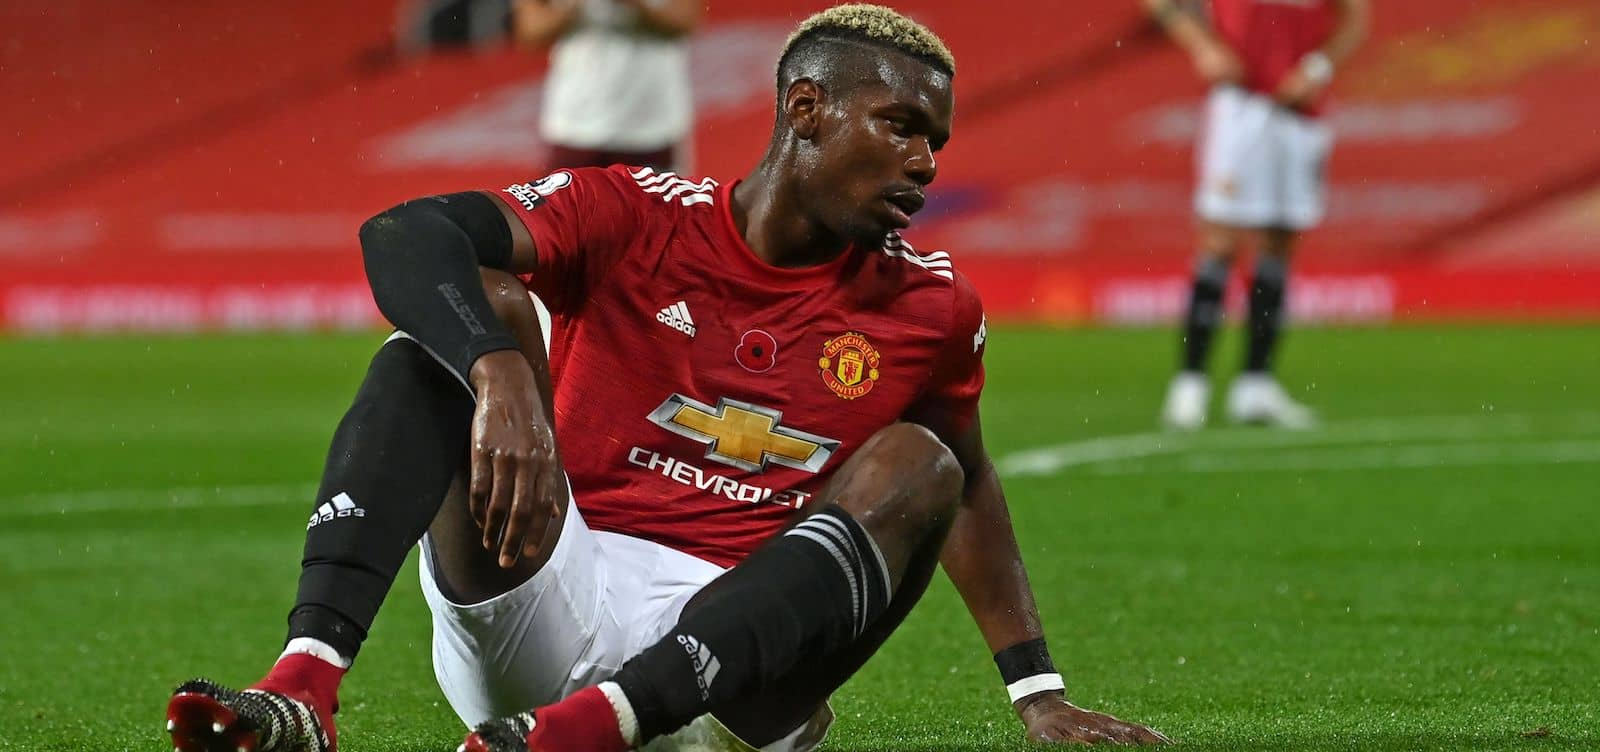 Jamie Carragher blasts Paul Pogba for unimpressive Manchester United career